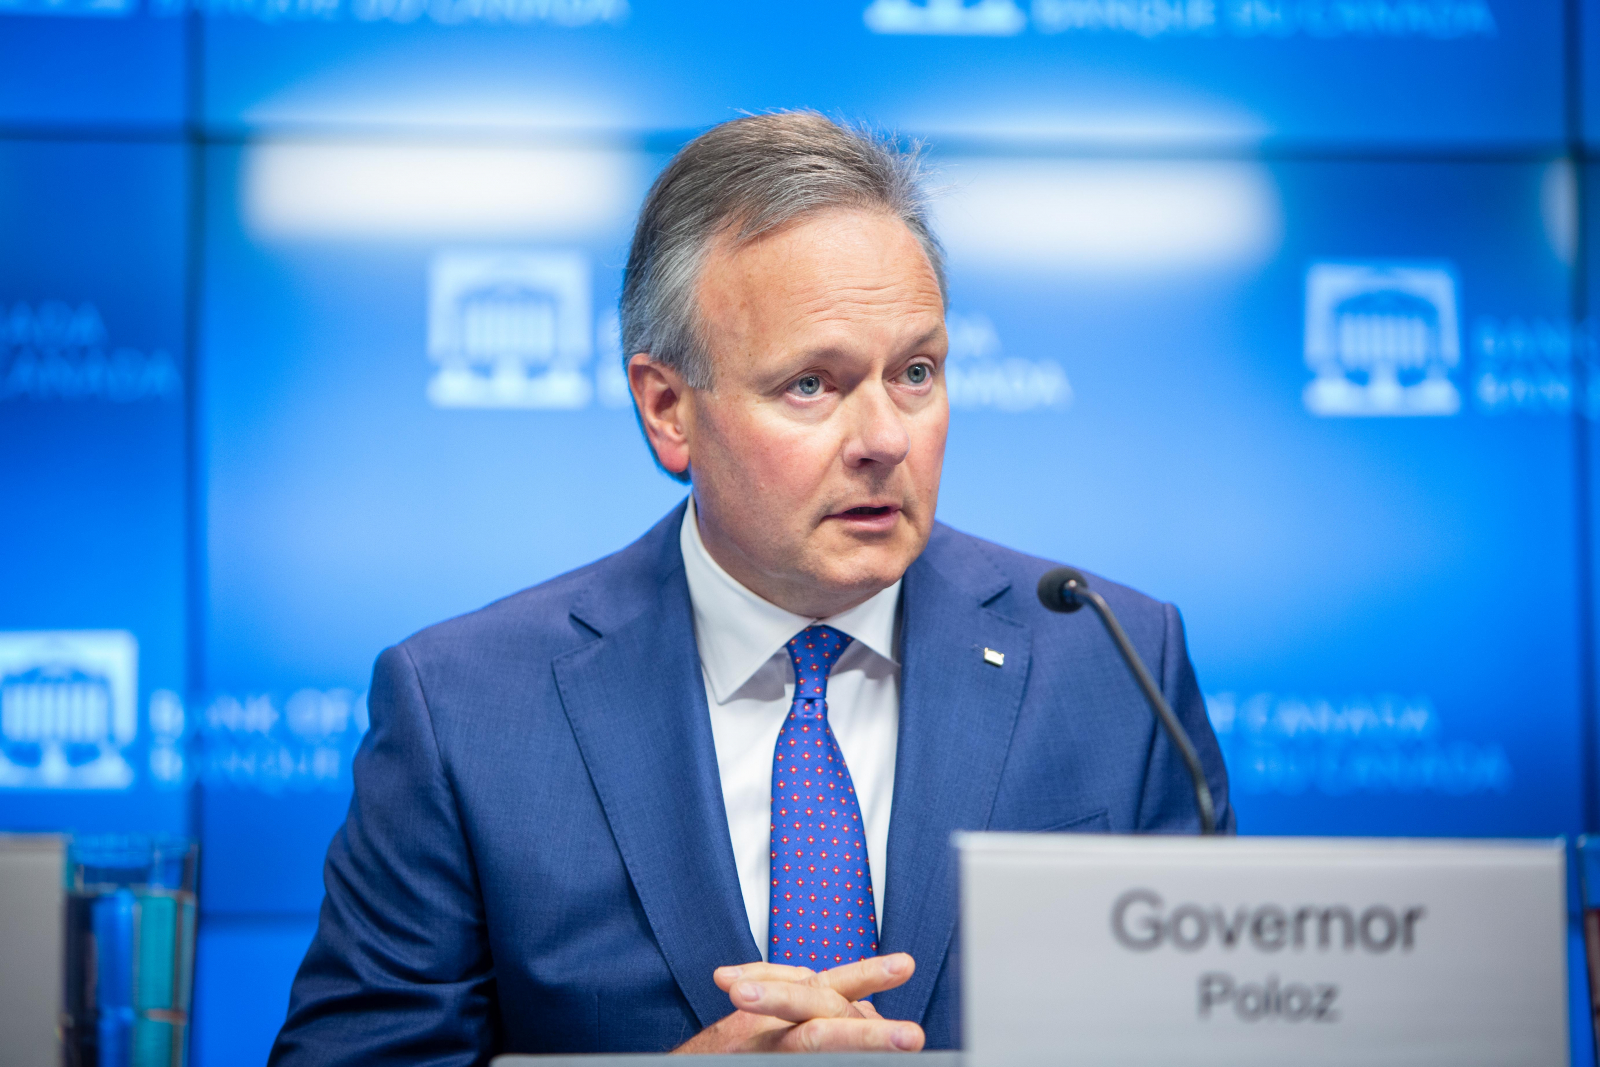 Bank of Canada warns 'fire sales' of carbon-intensive assets could 'destabilize' financial system